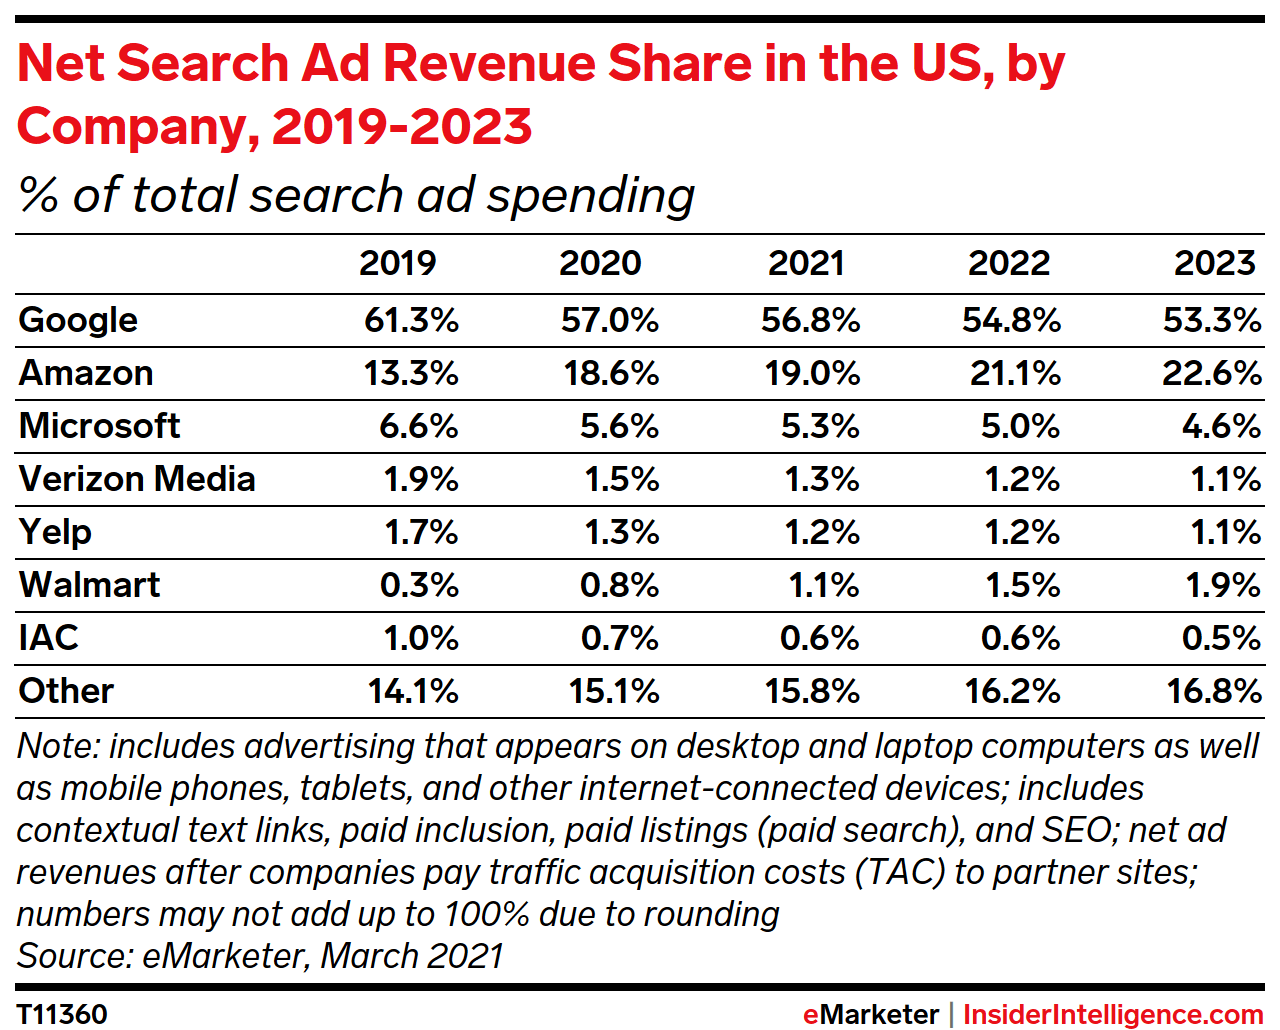 Net Search Ad Revenue Share In the US, by Company, 2019-2023